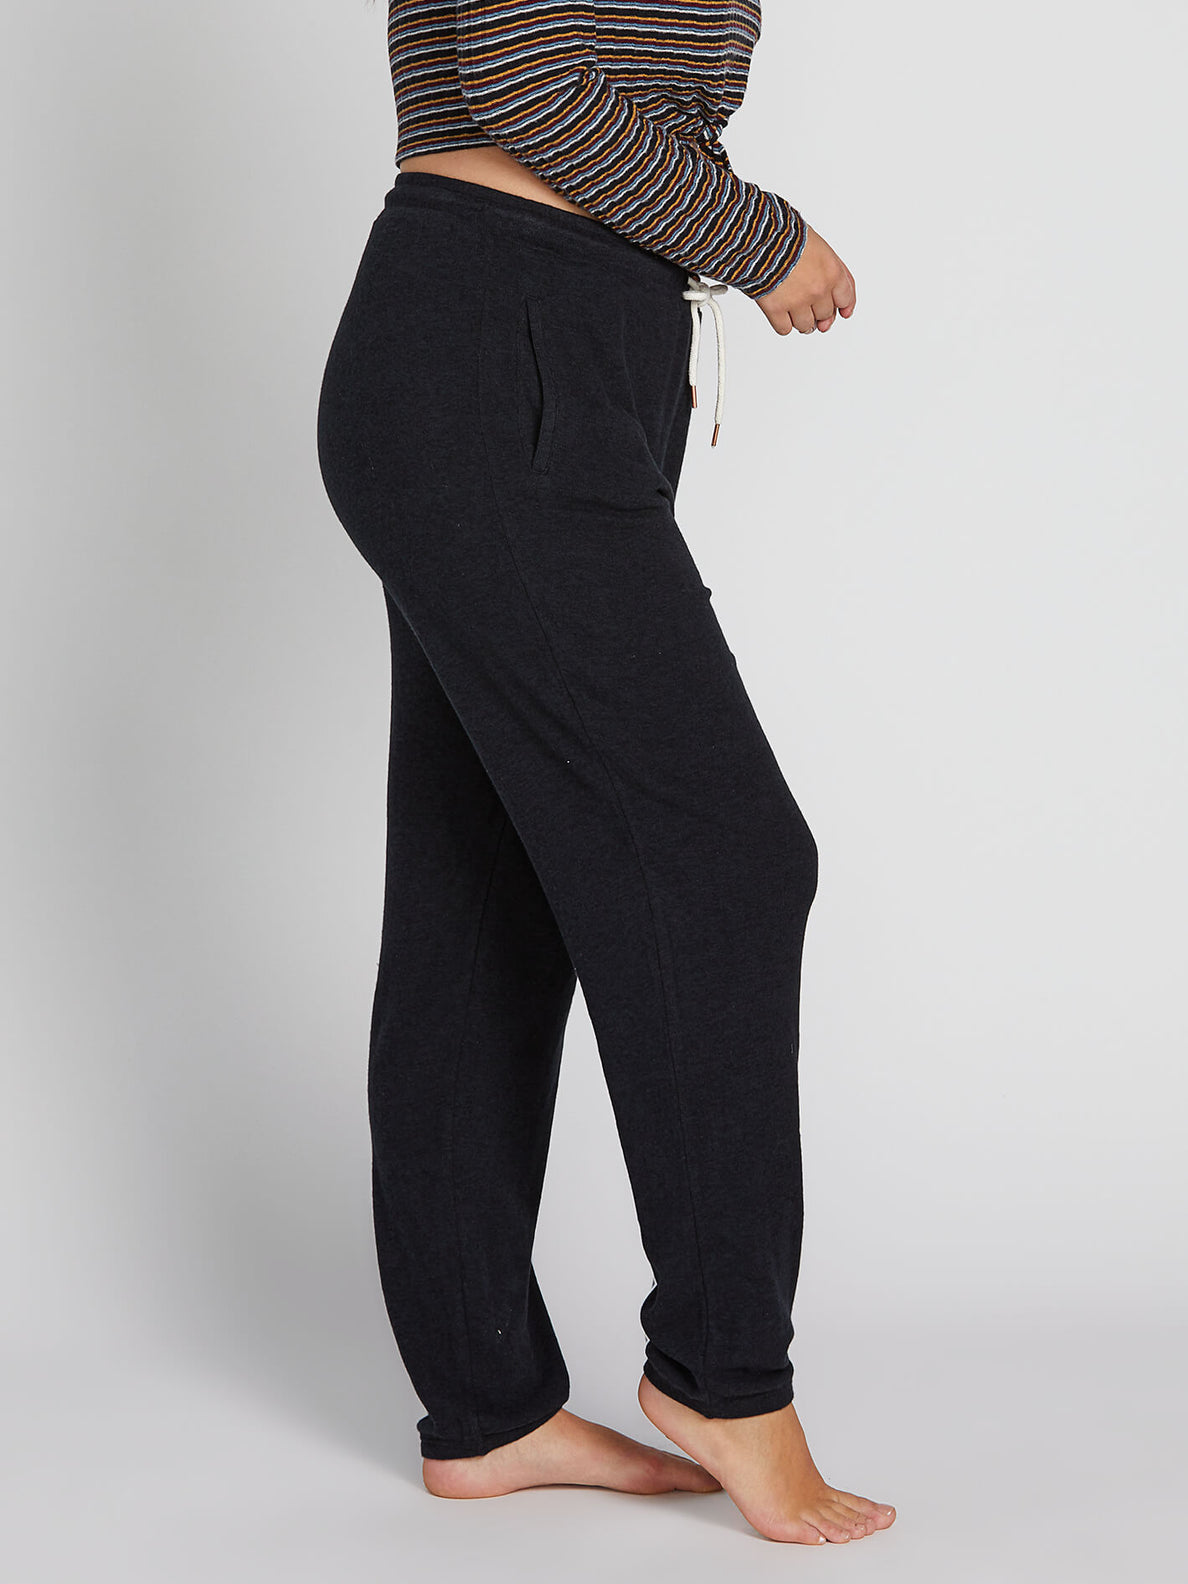 Lived In Lounge Fleece Pants - Black (B1111801P_BLK) [1]